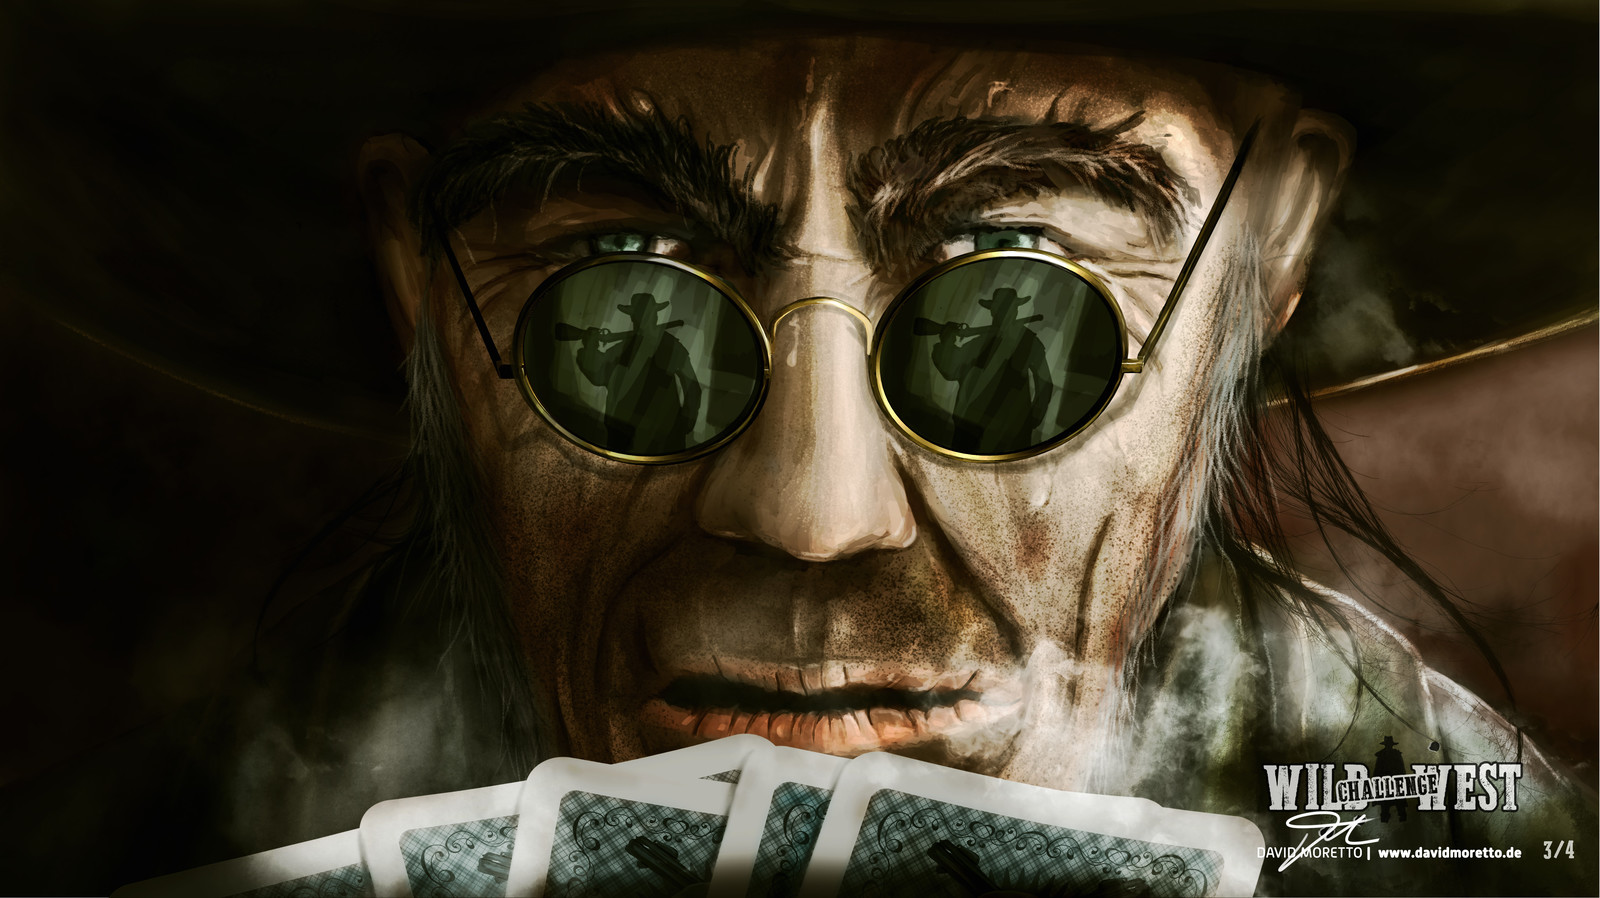 Wild West Keyframe Illustration THE LATE REVENGE! #3 / 4   There he sat - his poker cards in his hand, his cold eyes ,freezing as he saw Joe standing in the entrance of the saloon. Not right now, he thought.